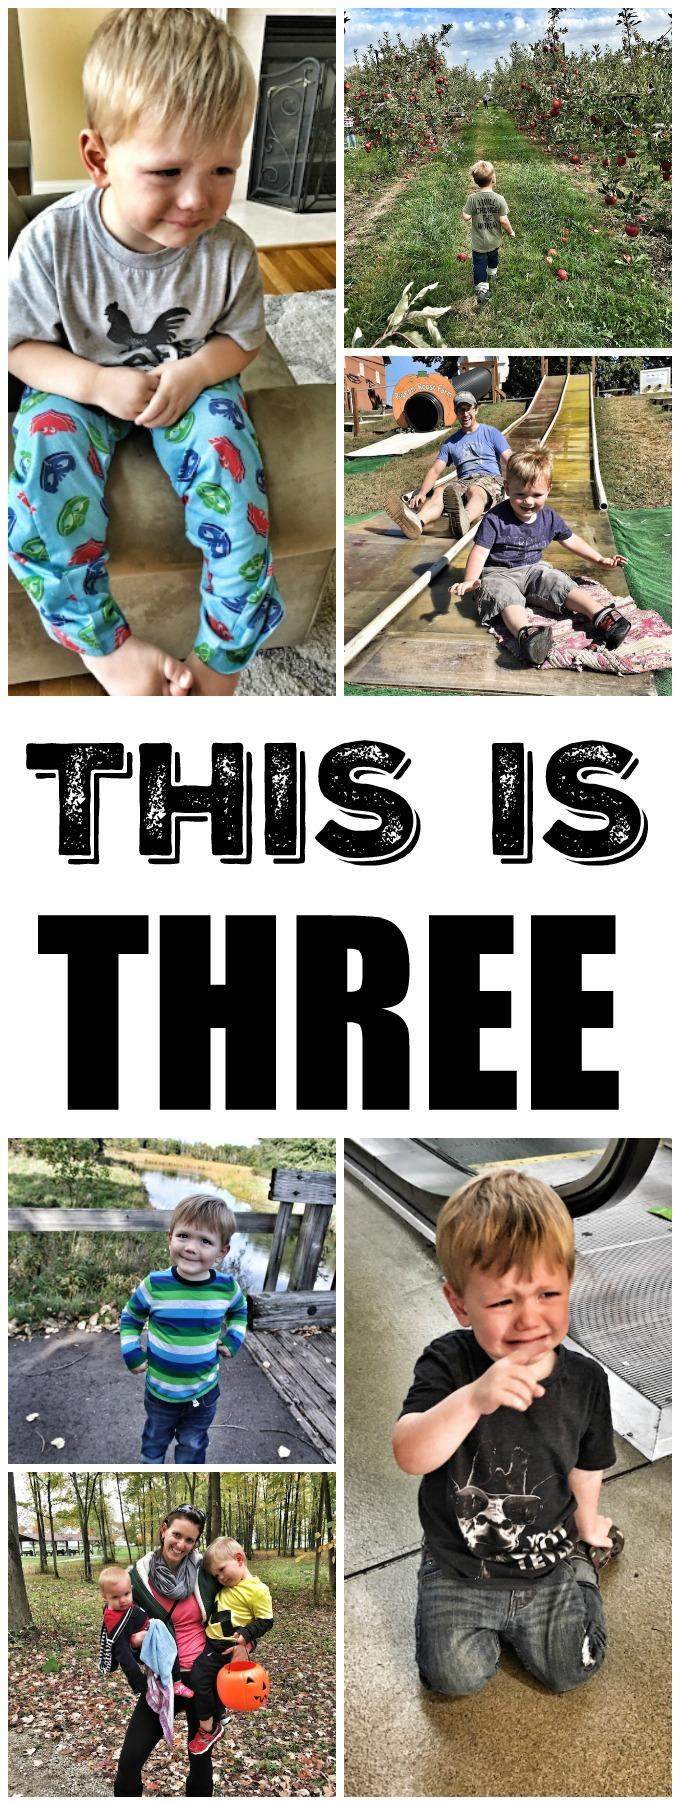 This is three. Three is hard, frustrating and amazing all rolled into one.